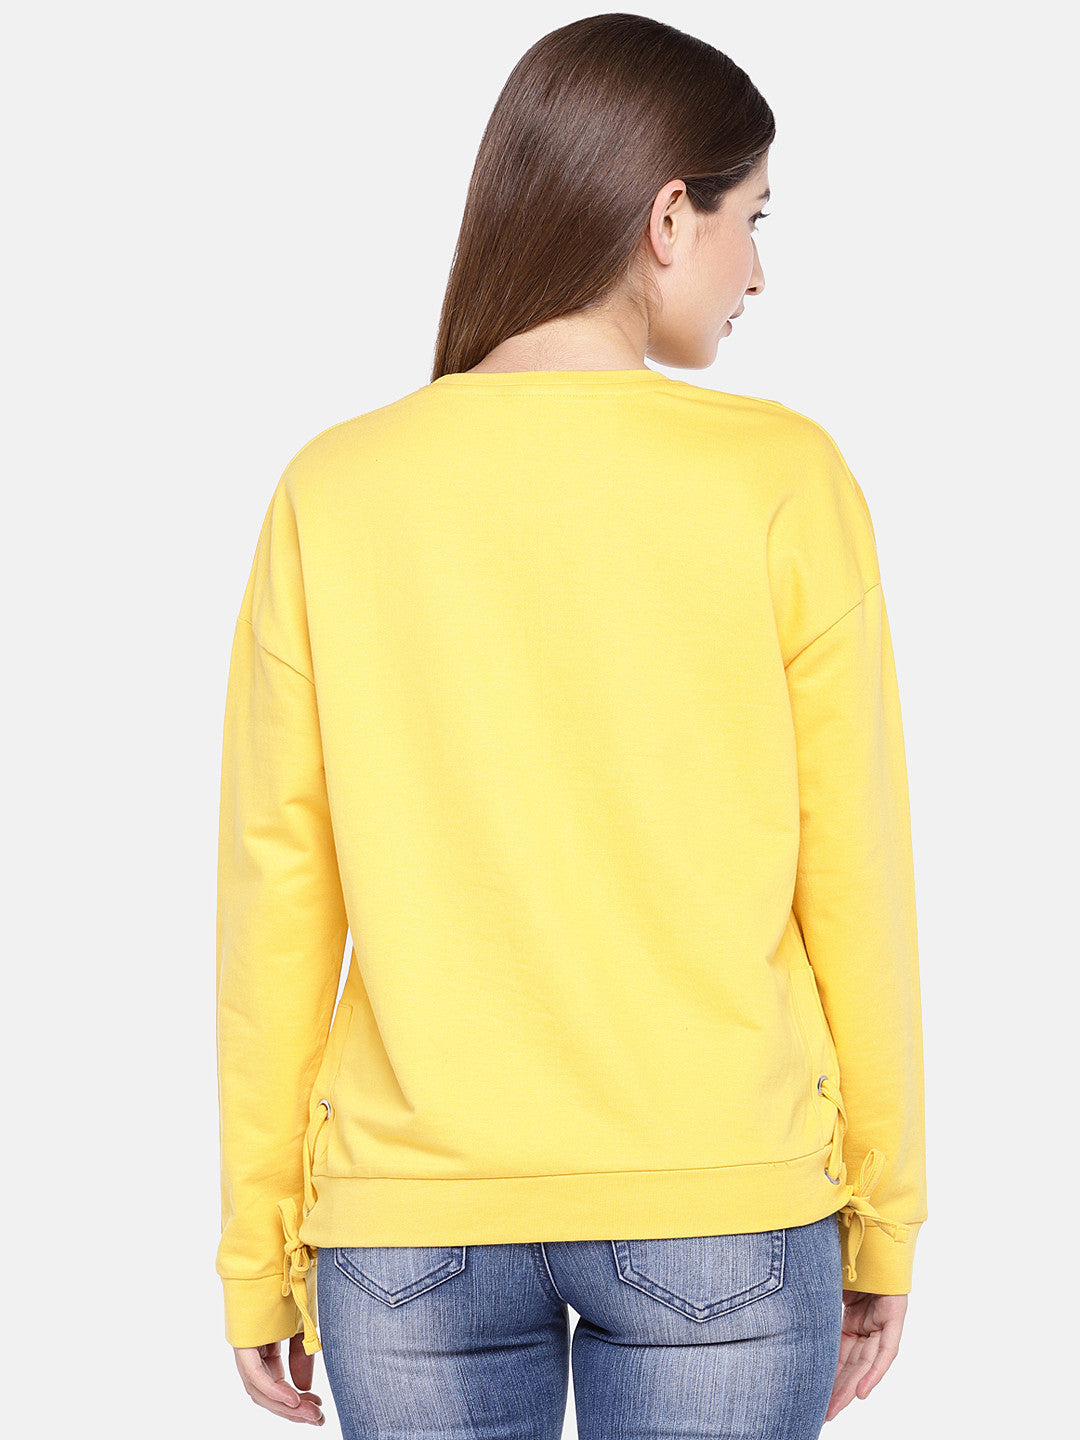 Yellow Printed Sweatshirt-3